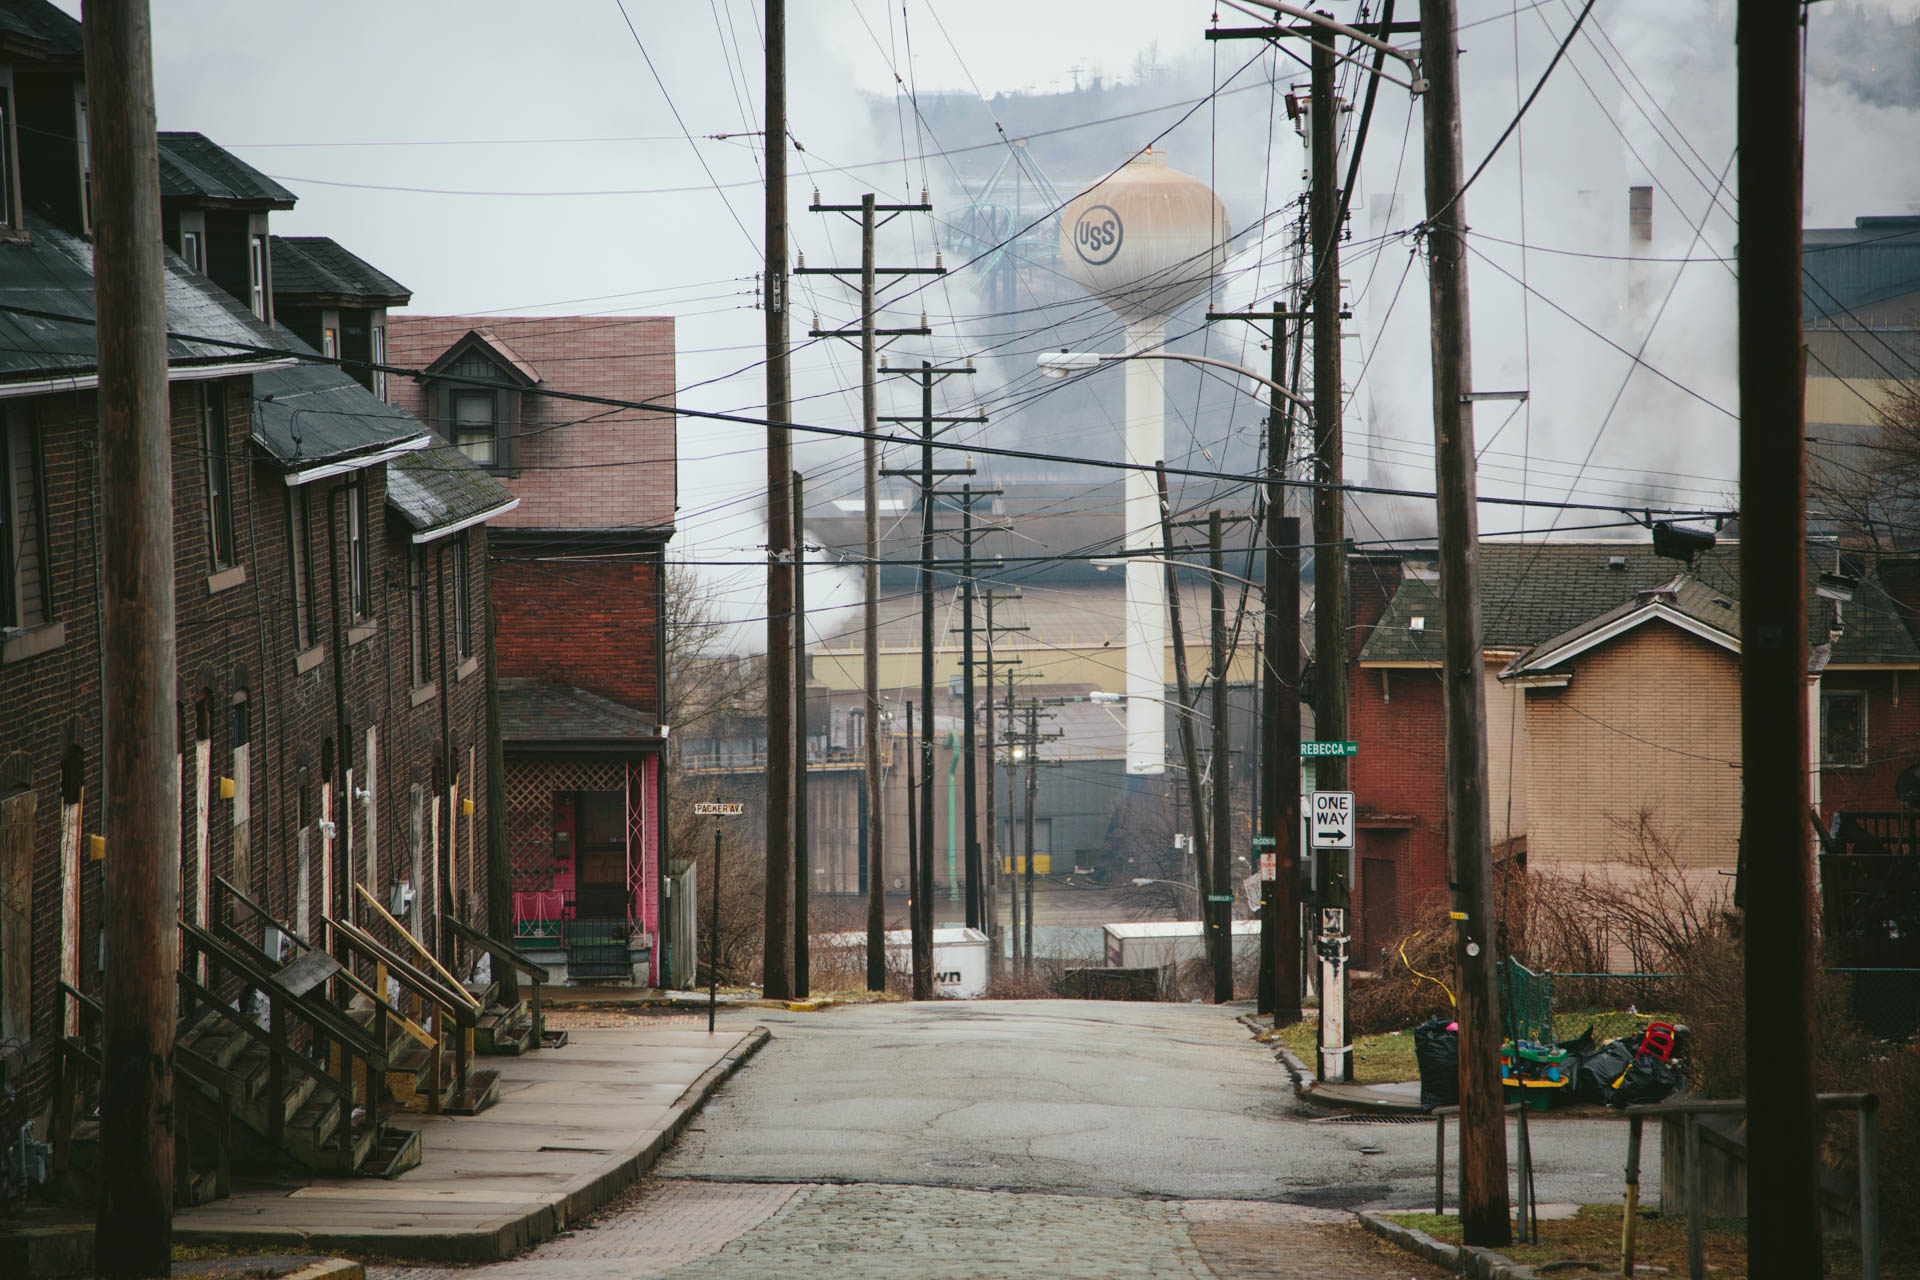 13th-street-view-us-steel-braddock